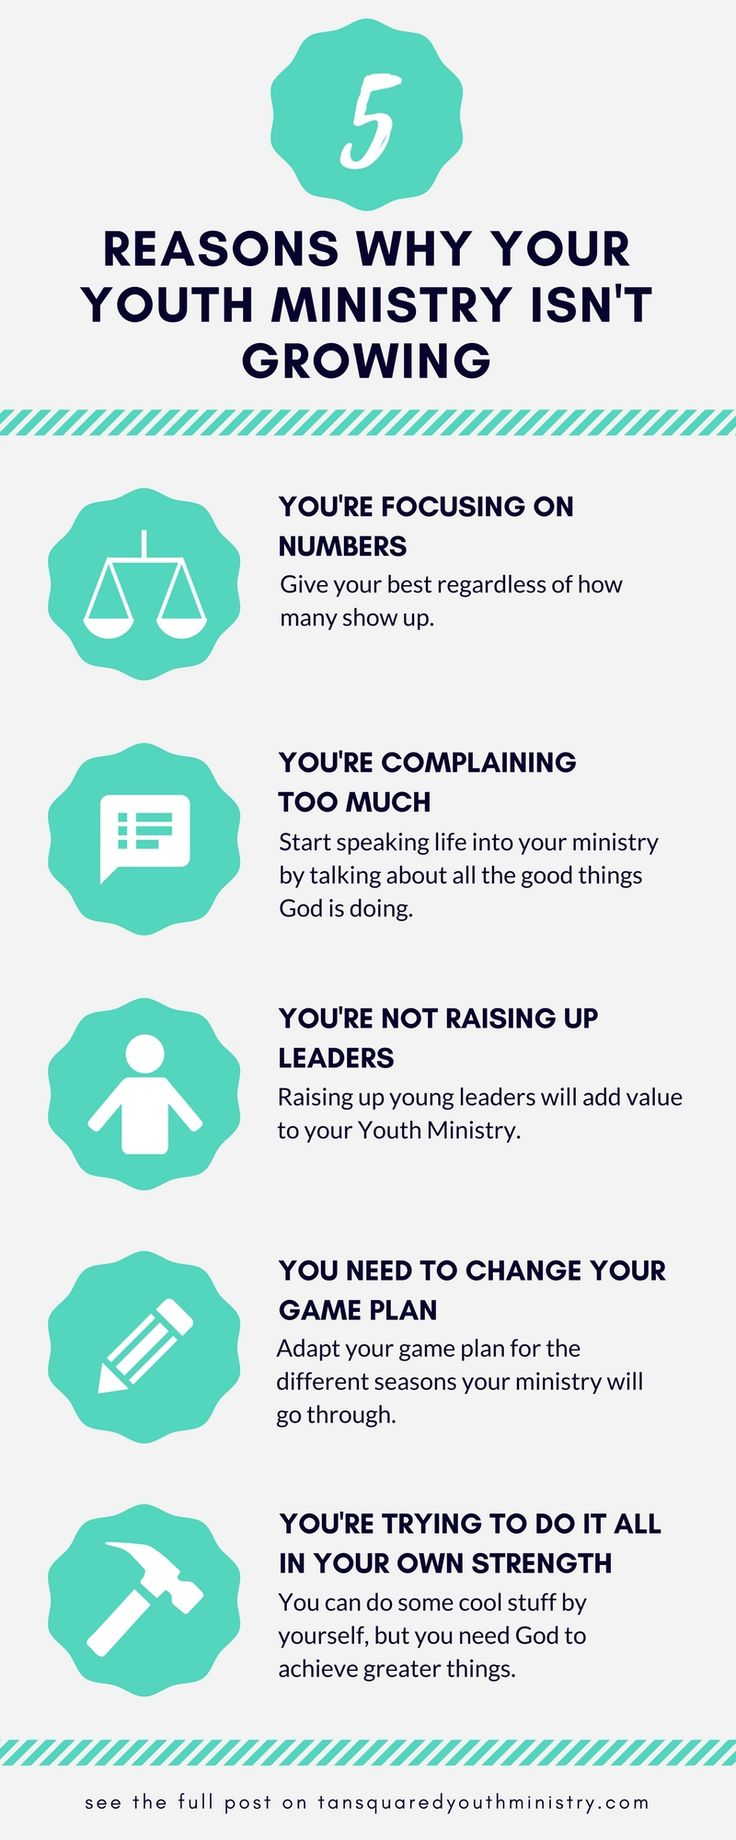 Are you struggling to see growth in your youth ministry? Either personal growth or growth in numbers? There's many reasons why this could be the case. Here are 5, and what you can do to fix them.